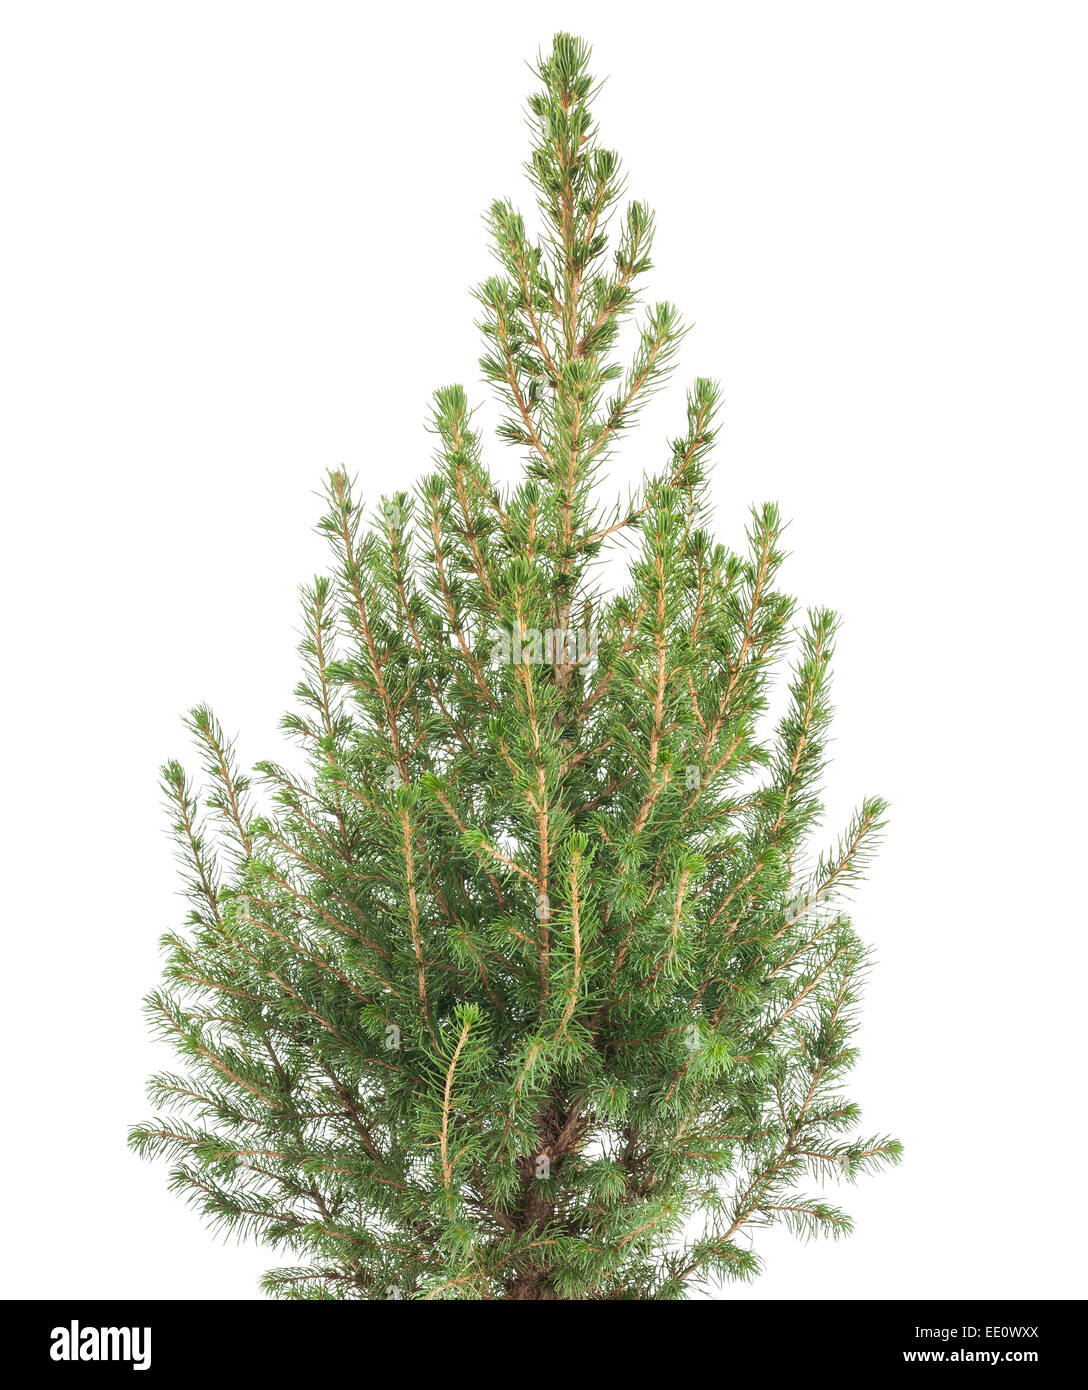 white spruce plant  isolated on white background - Stock Image